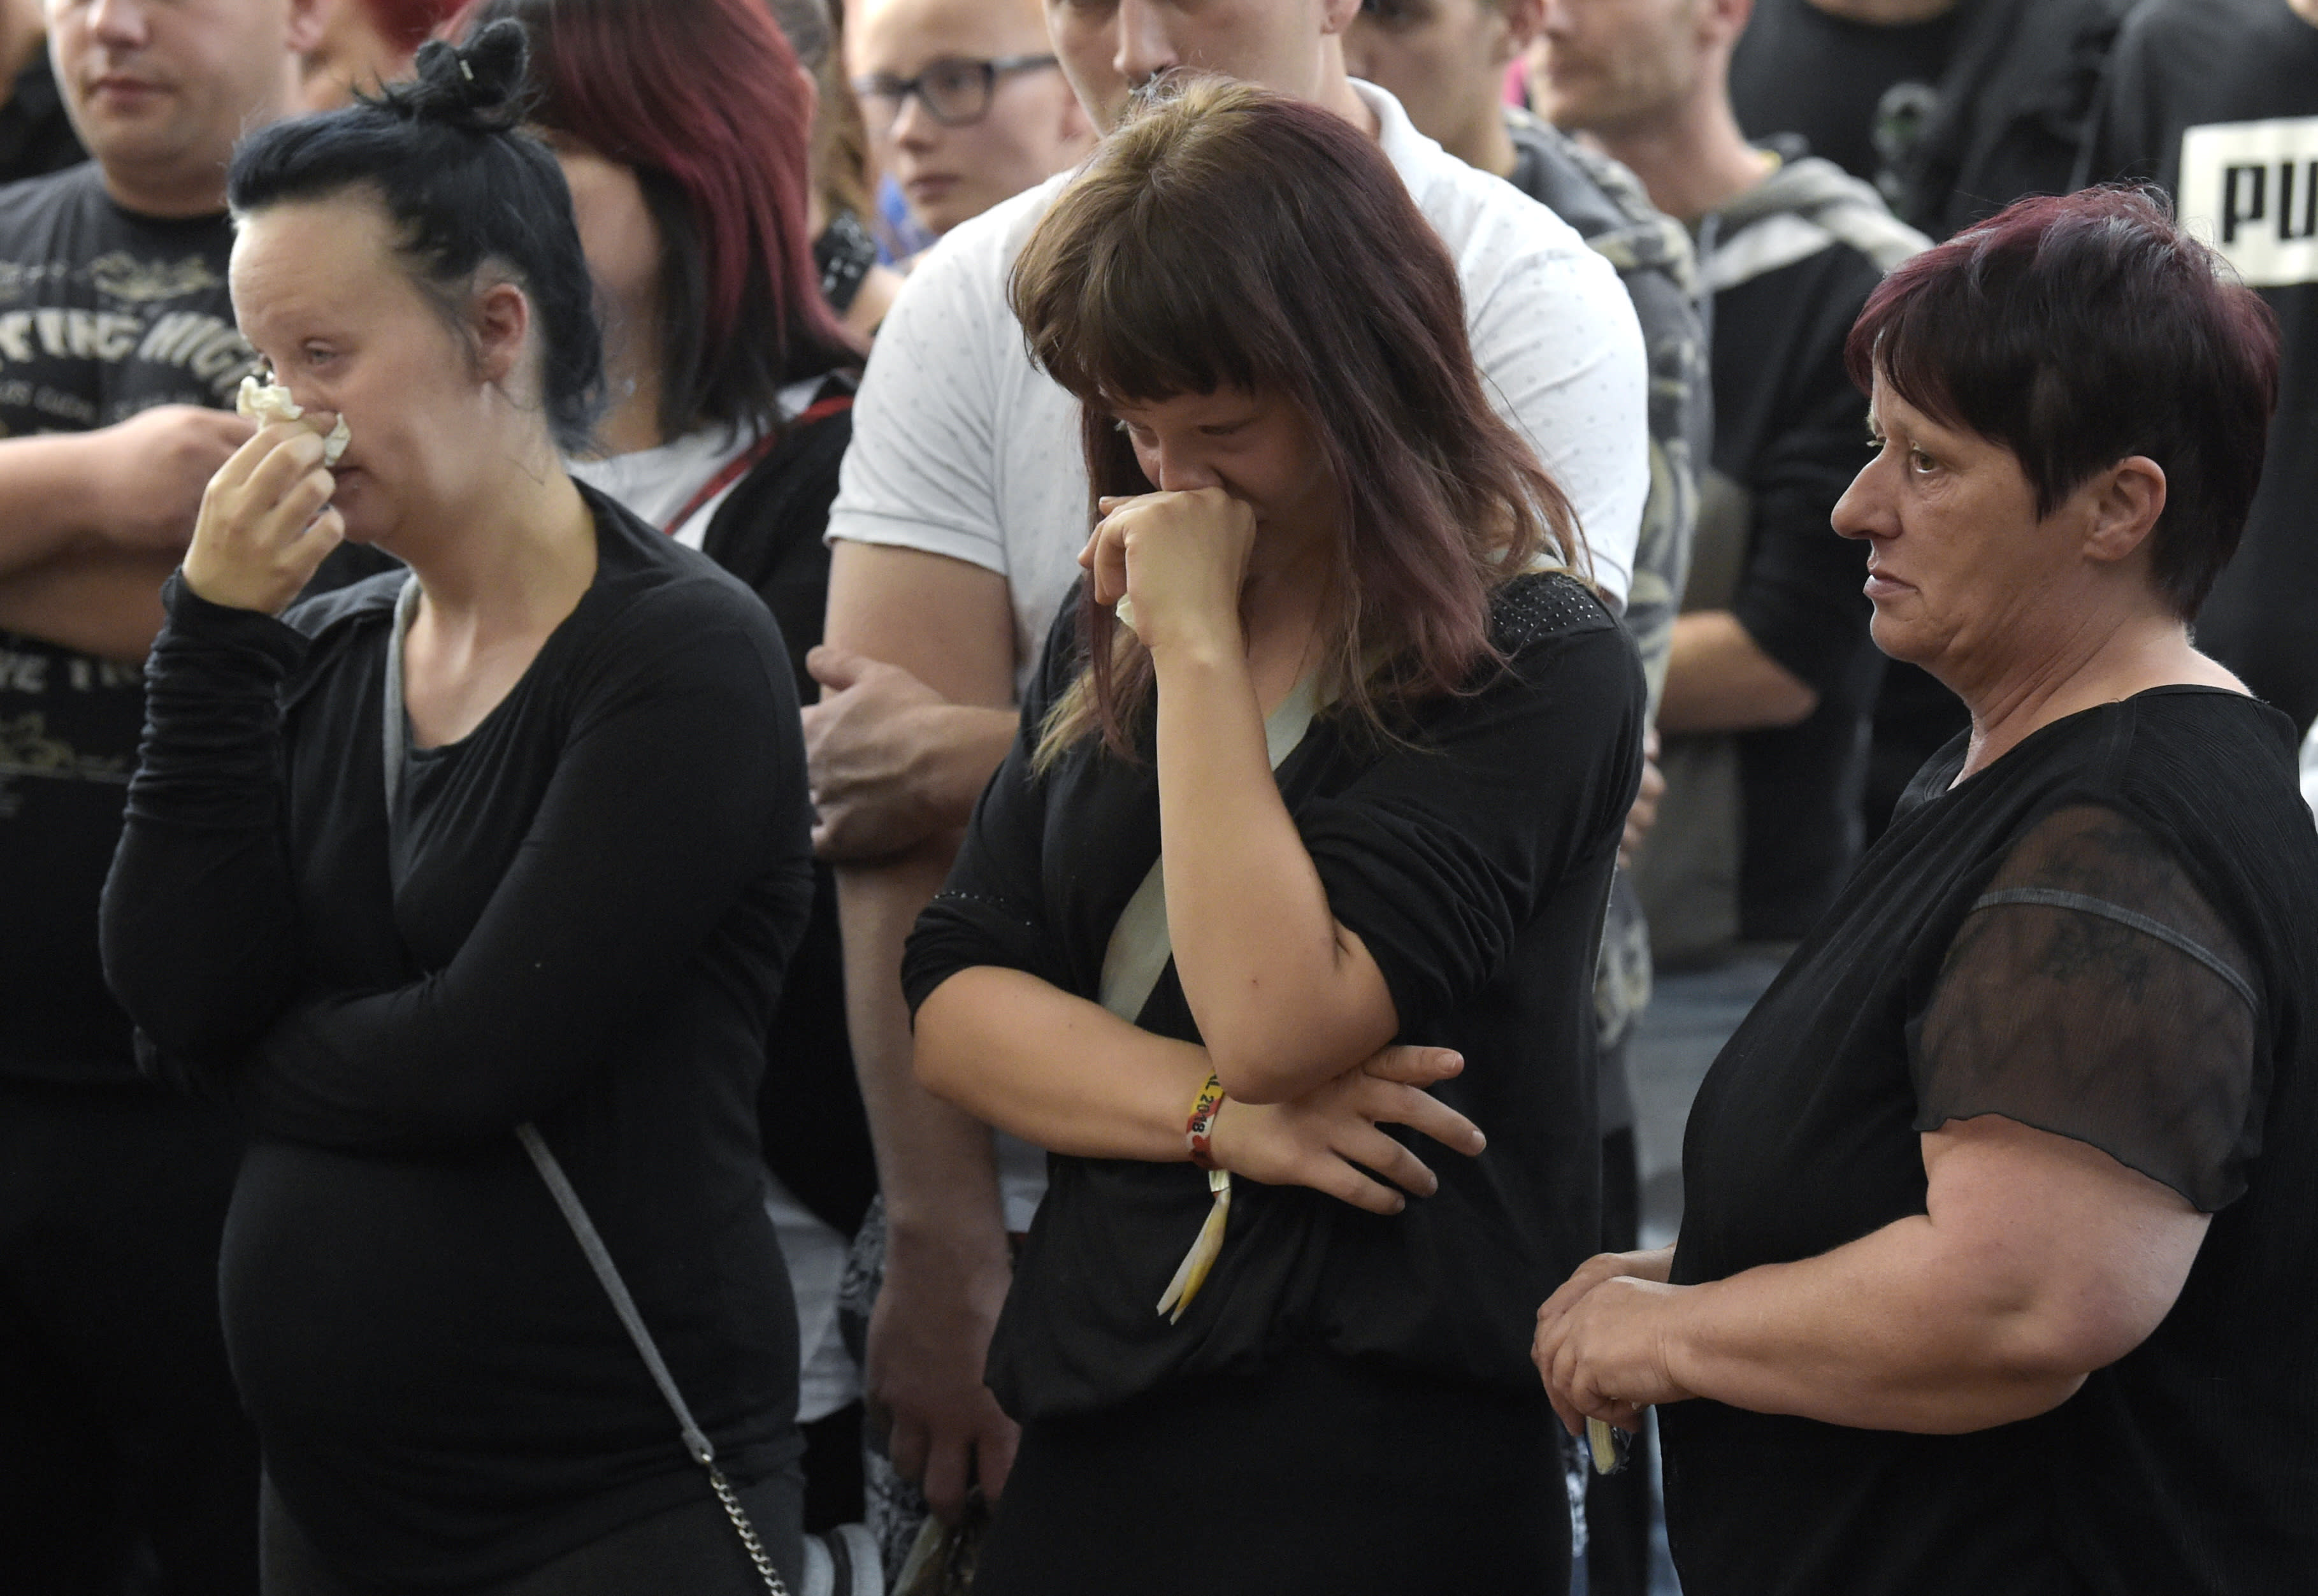 Women cry as people gather at the site of a deadly brawl in Koethen, 90 miles southwest of the German capital Berlin, Sunday, Sept. 9, 2018, after police has arrested two Afghan men on suspicion of killing a 22-year-old German man. (AP Photo/Jens Meyer)